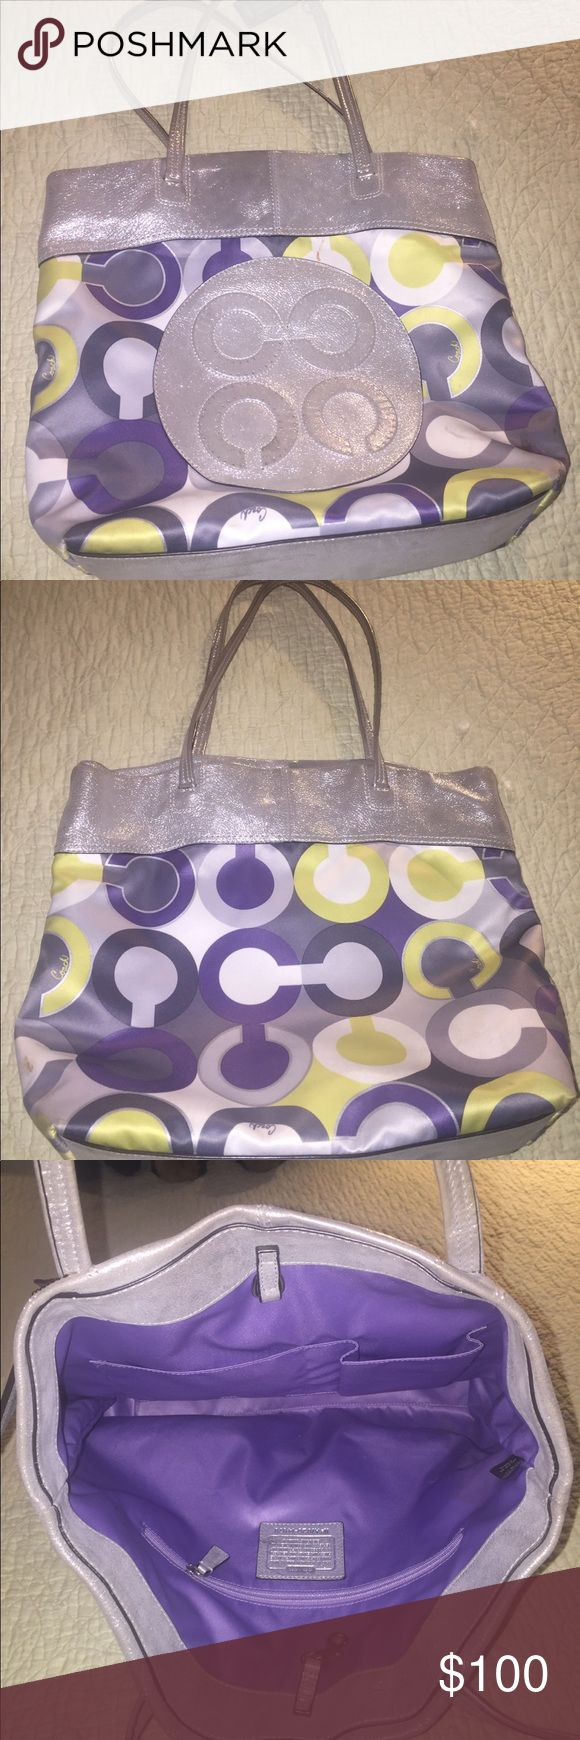 Coach tote bag Purple, green and silver coach tote bag! Used with a stain on the front (pictured). Loved, but no longer use. Open to trades. Coach Bags Totes